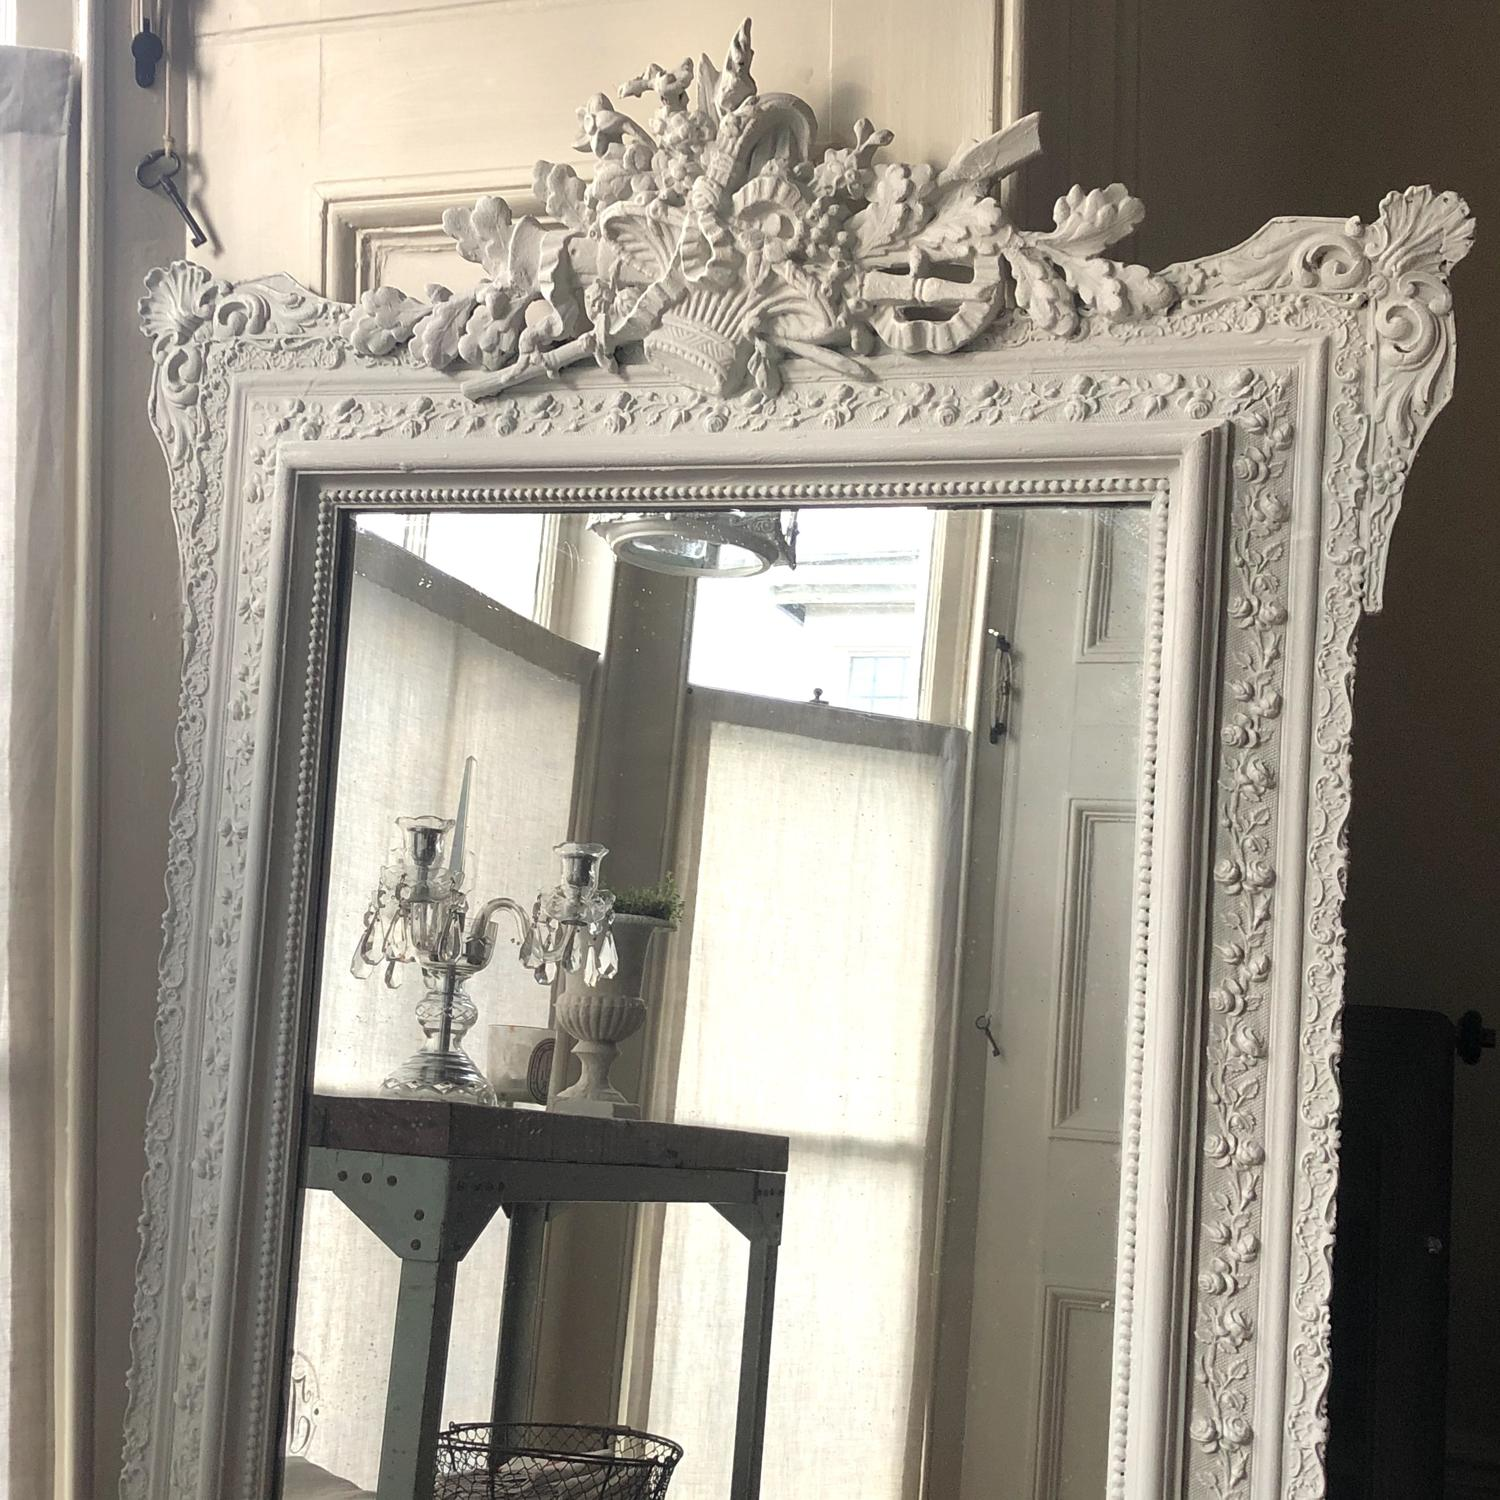 19th century French antique Louis XVI painted mirror